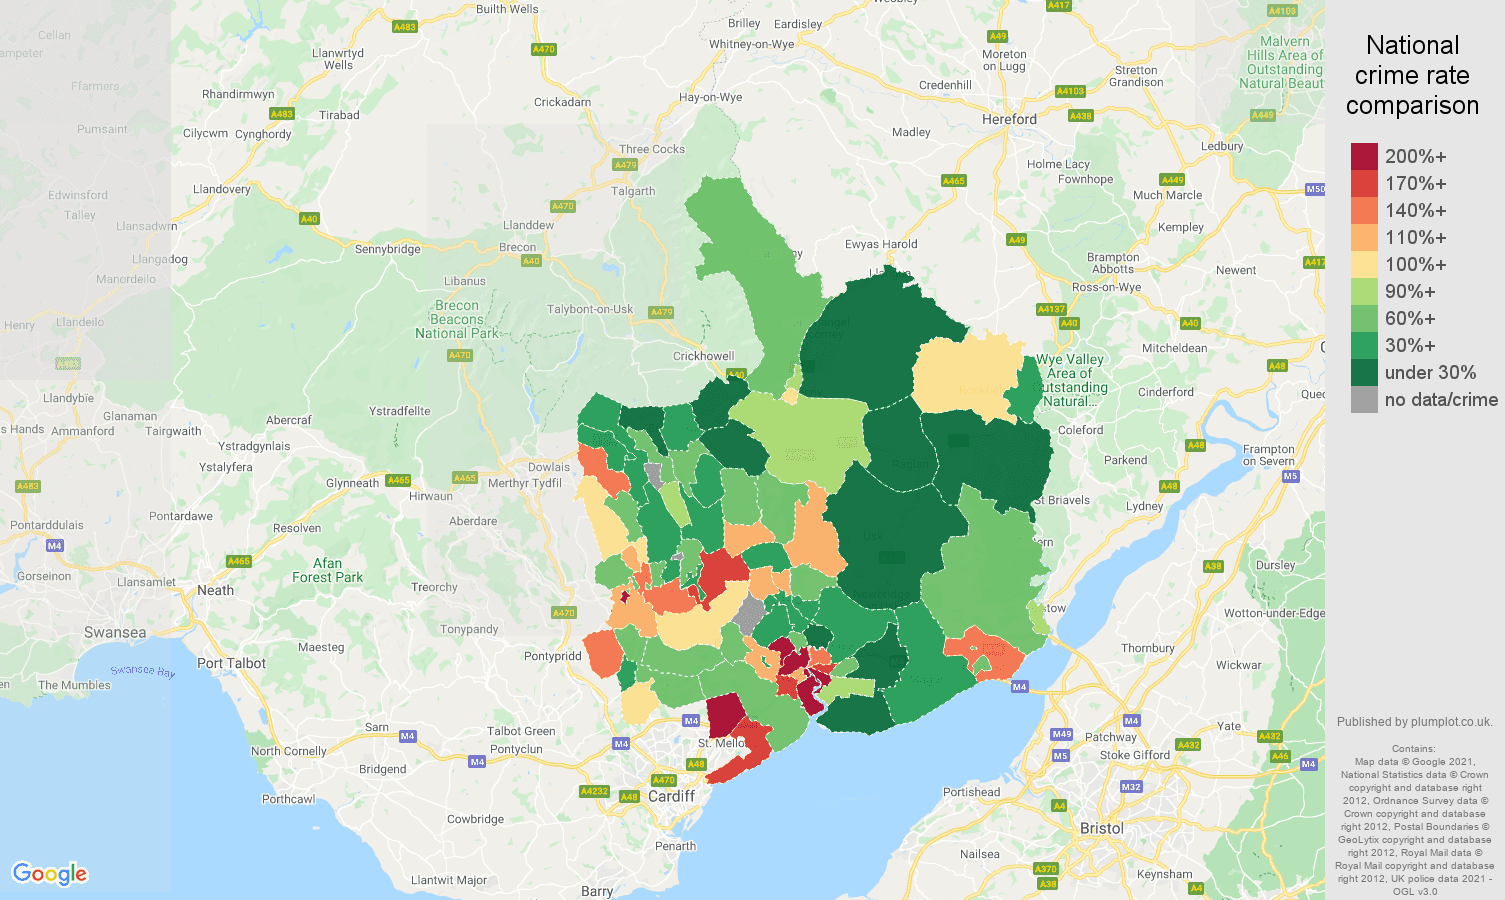 Gwent drugs crime rate comparison map